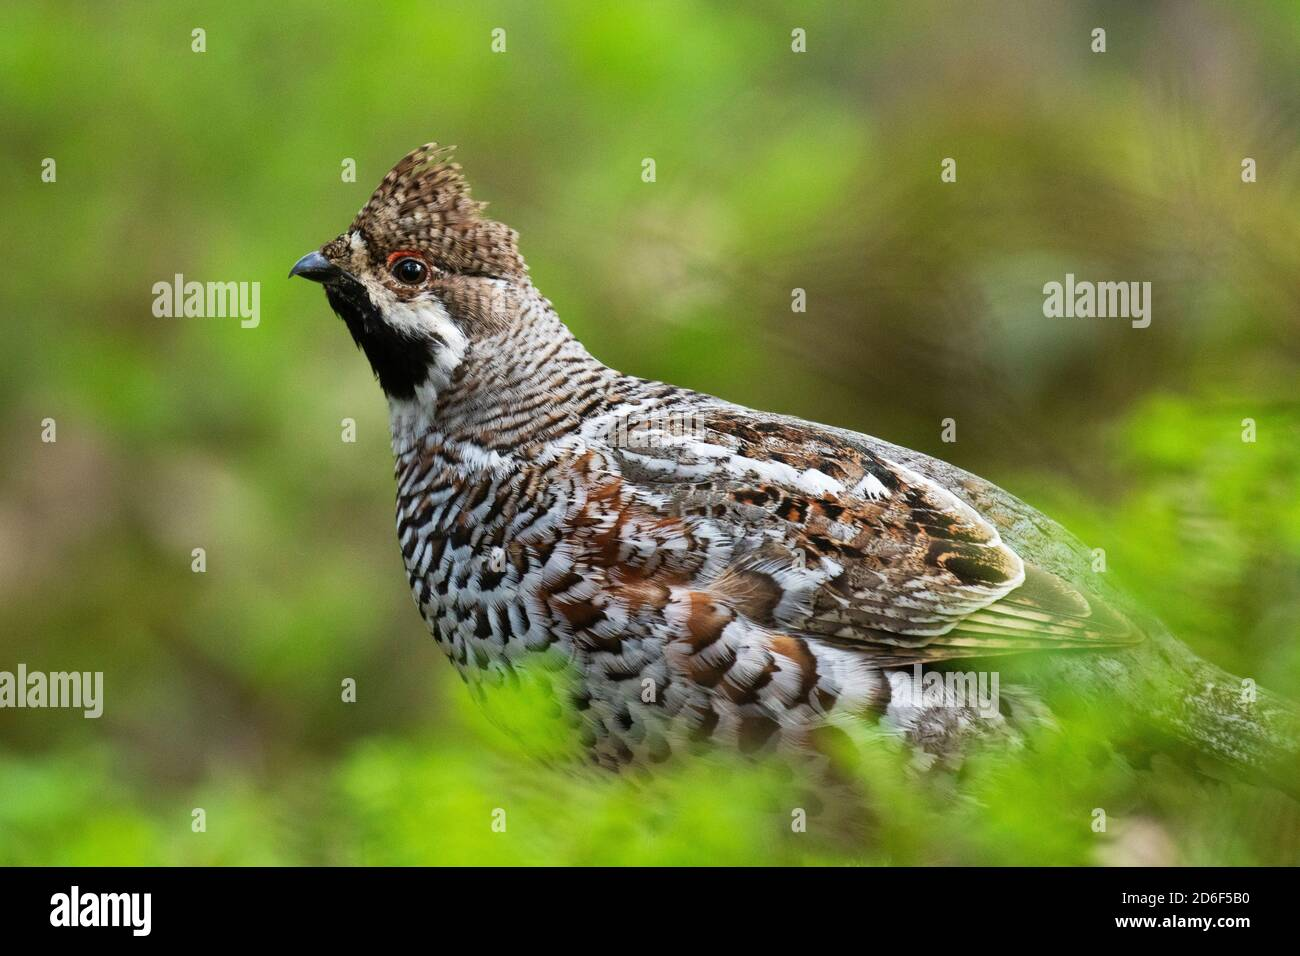 A male Hazel grouse (Tetrastes bonasia) with a raised crest feathers in a green, lush and old boreal forest during spring breeding season in Estonia, Stock Photo